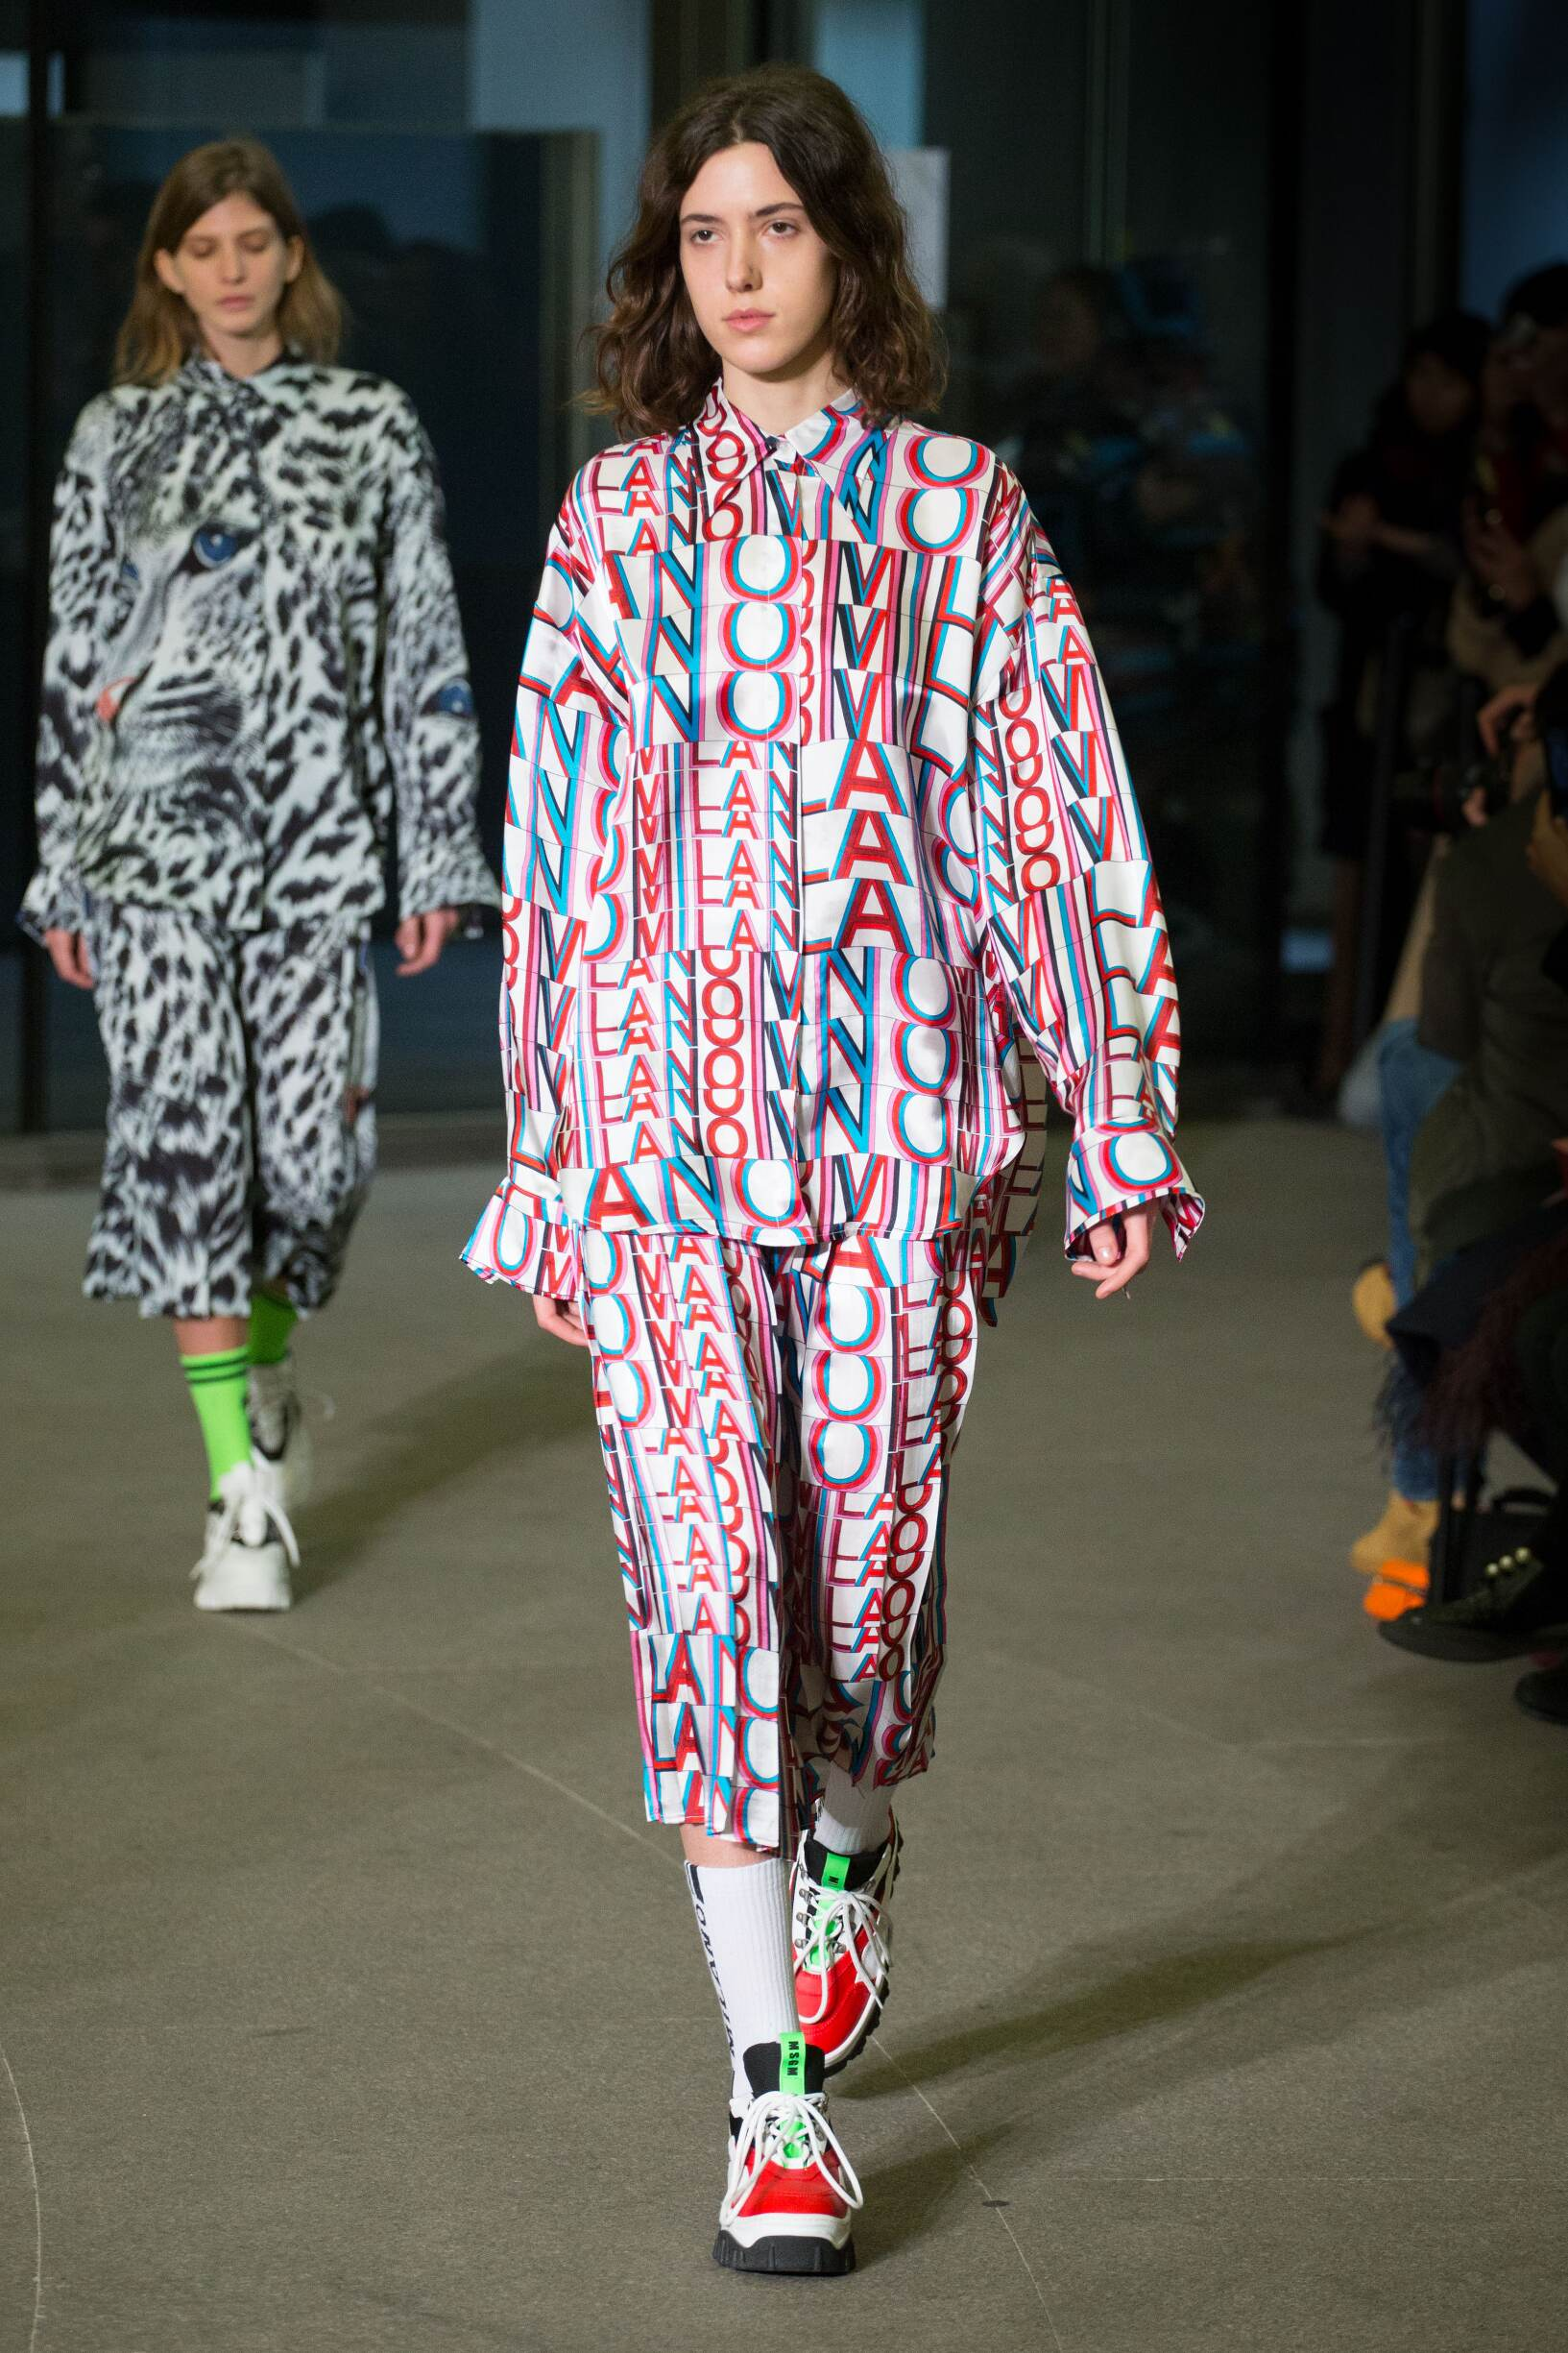 2018 Msgm Woman Catwalk